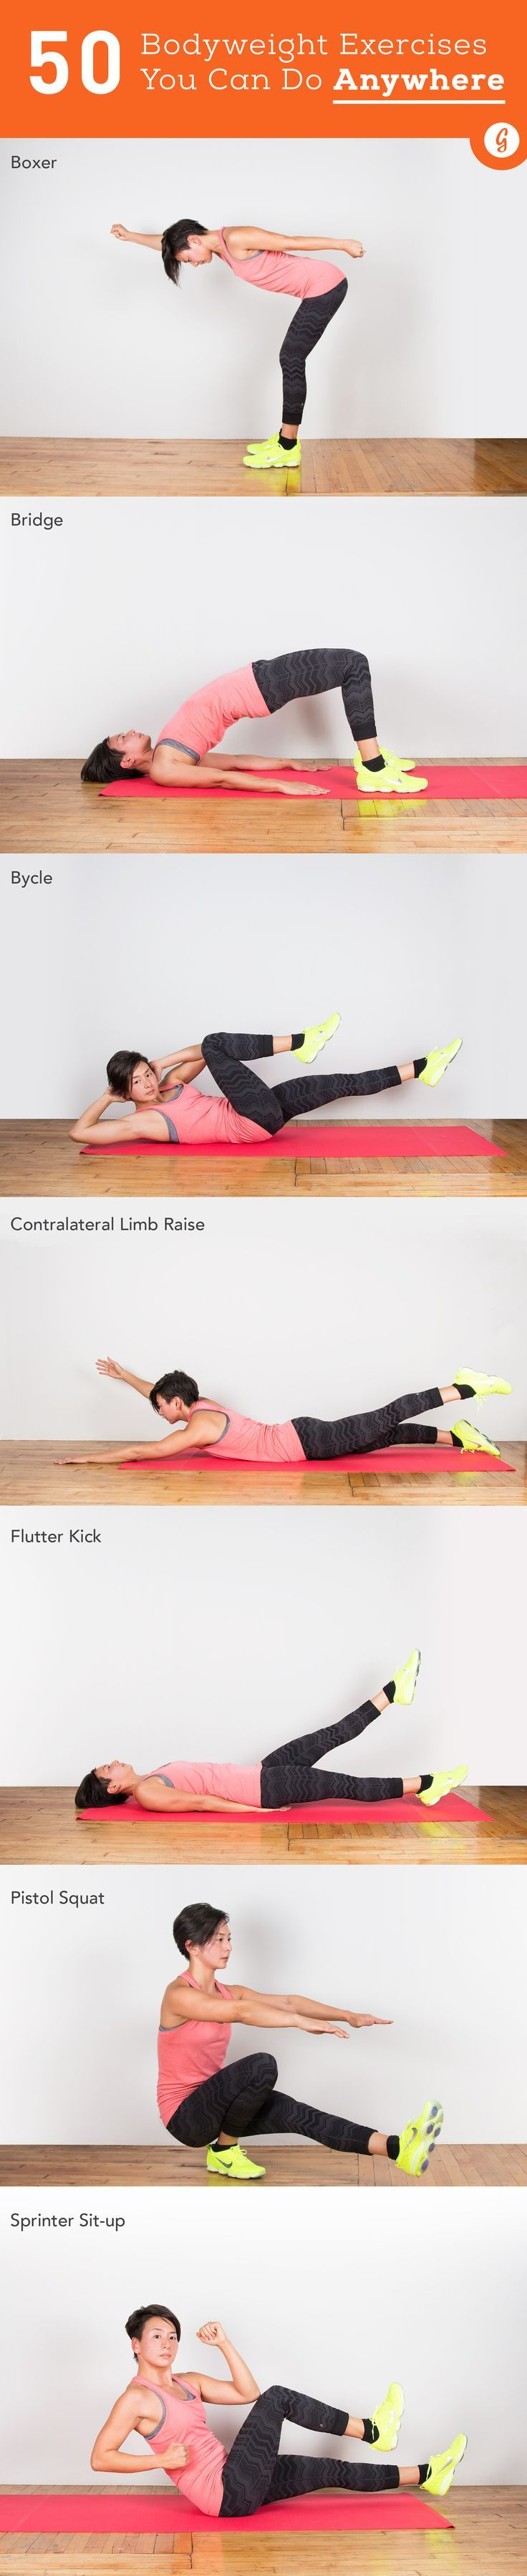 50 Bodyweight Exercises You Can Do Anywhere #exercise #fitness